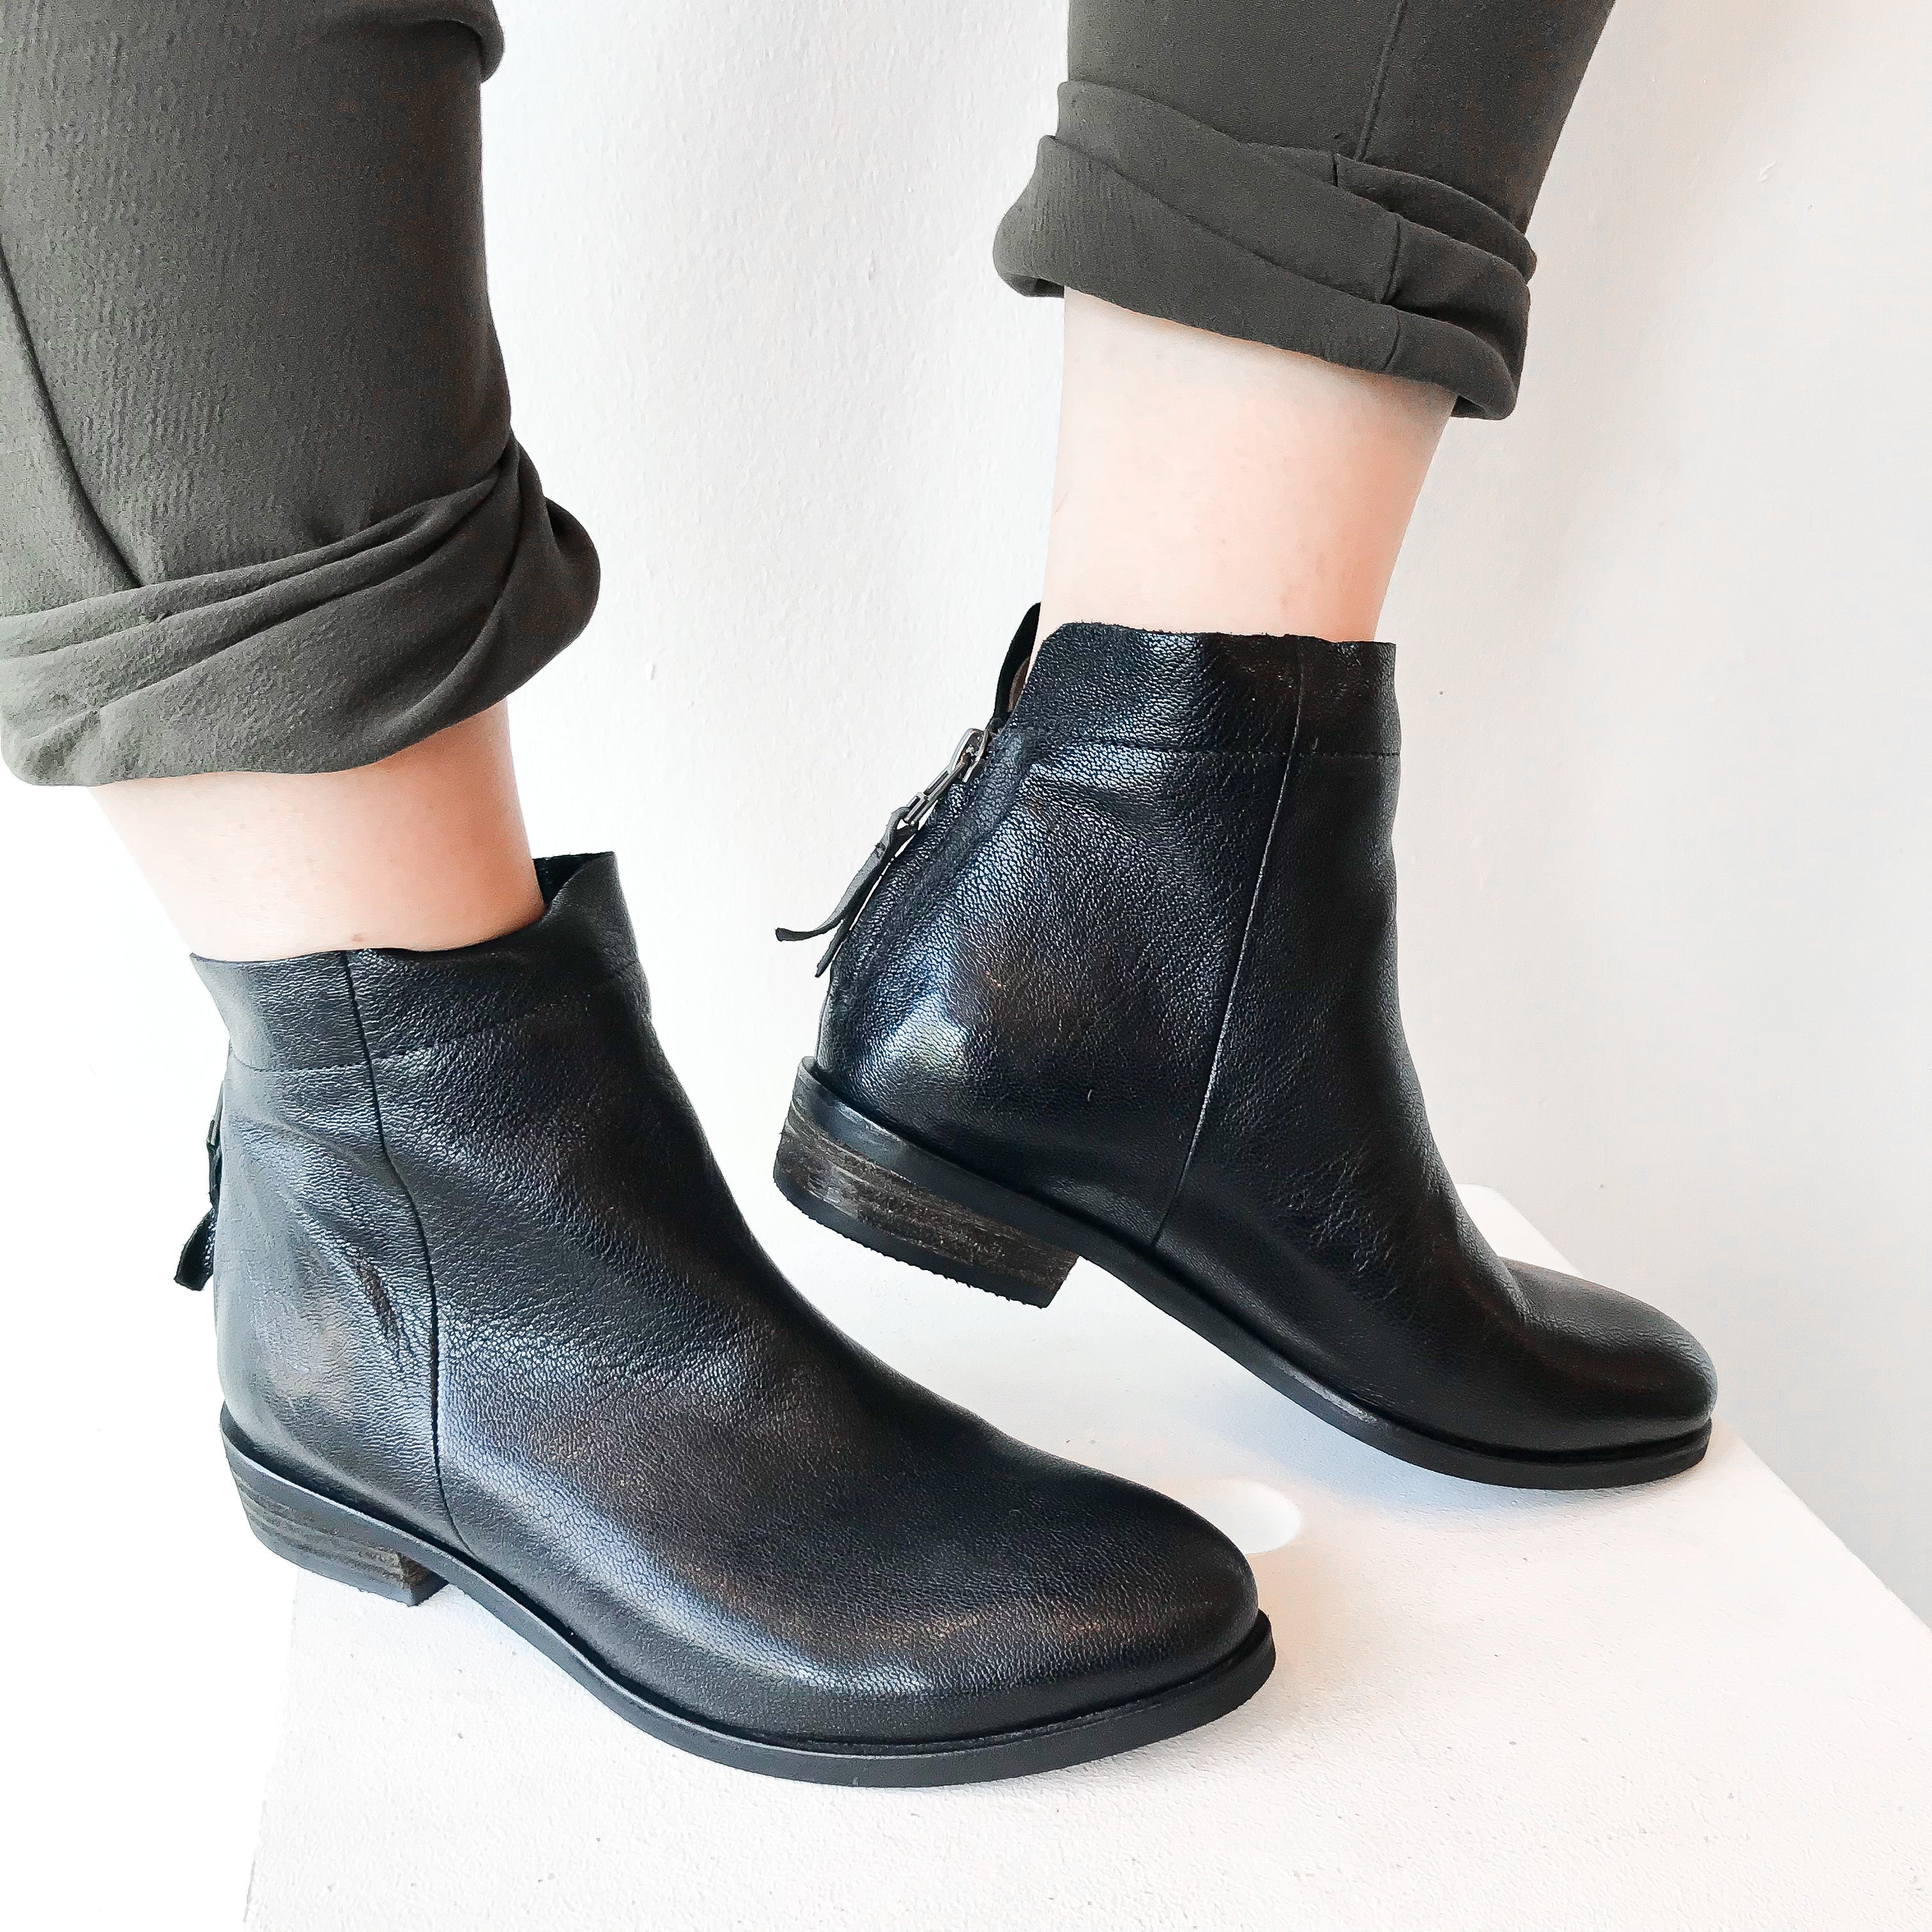 FW20 76700-3 | Zipper Stiched Ankle Boots - Black | Yuko Imanishi+